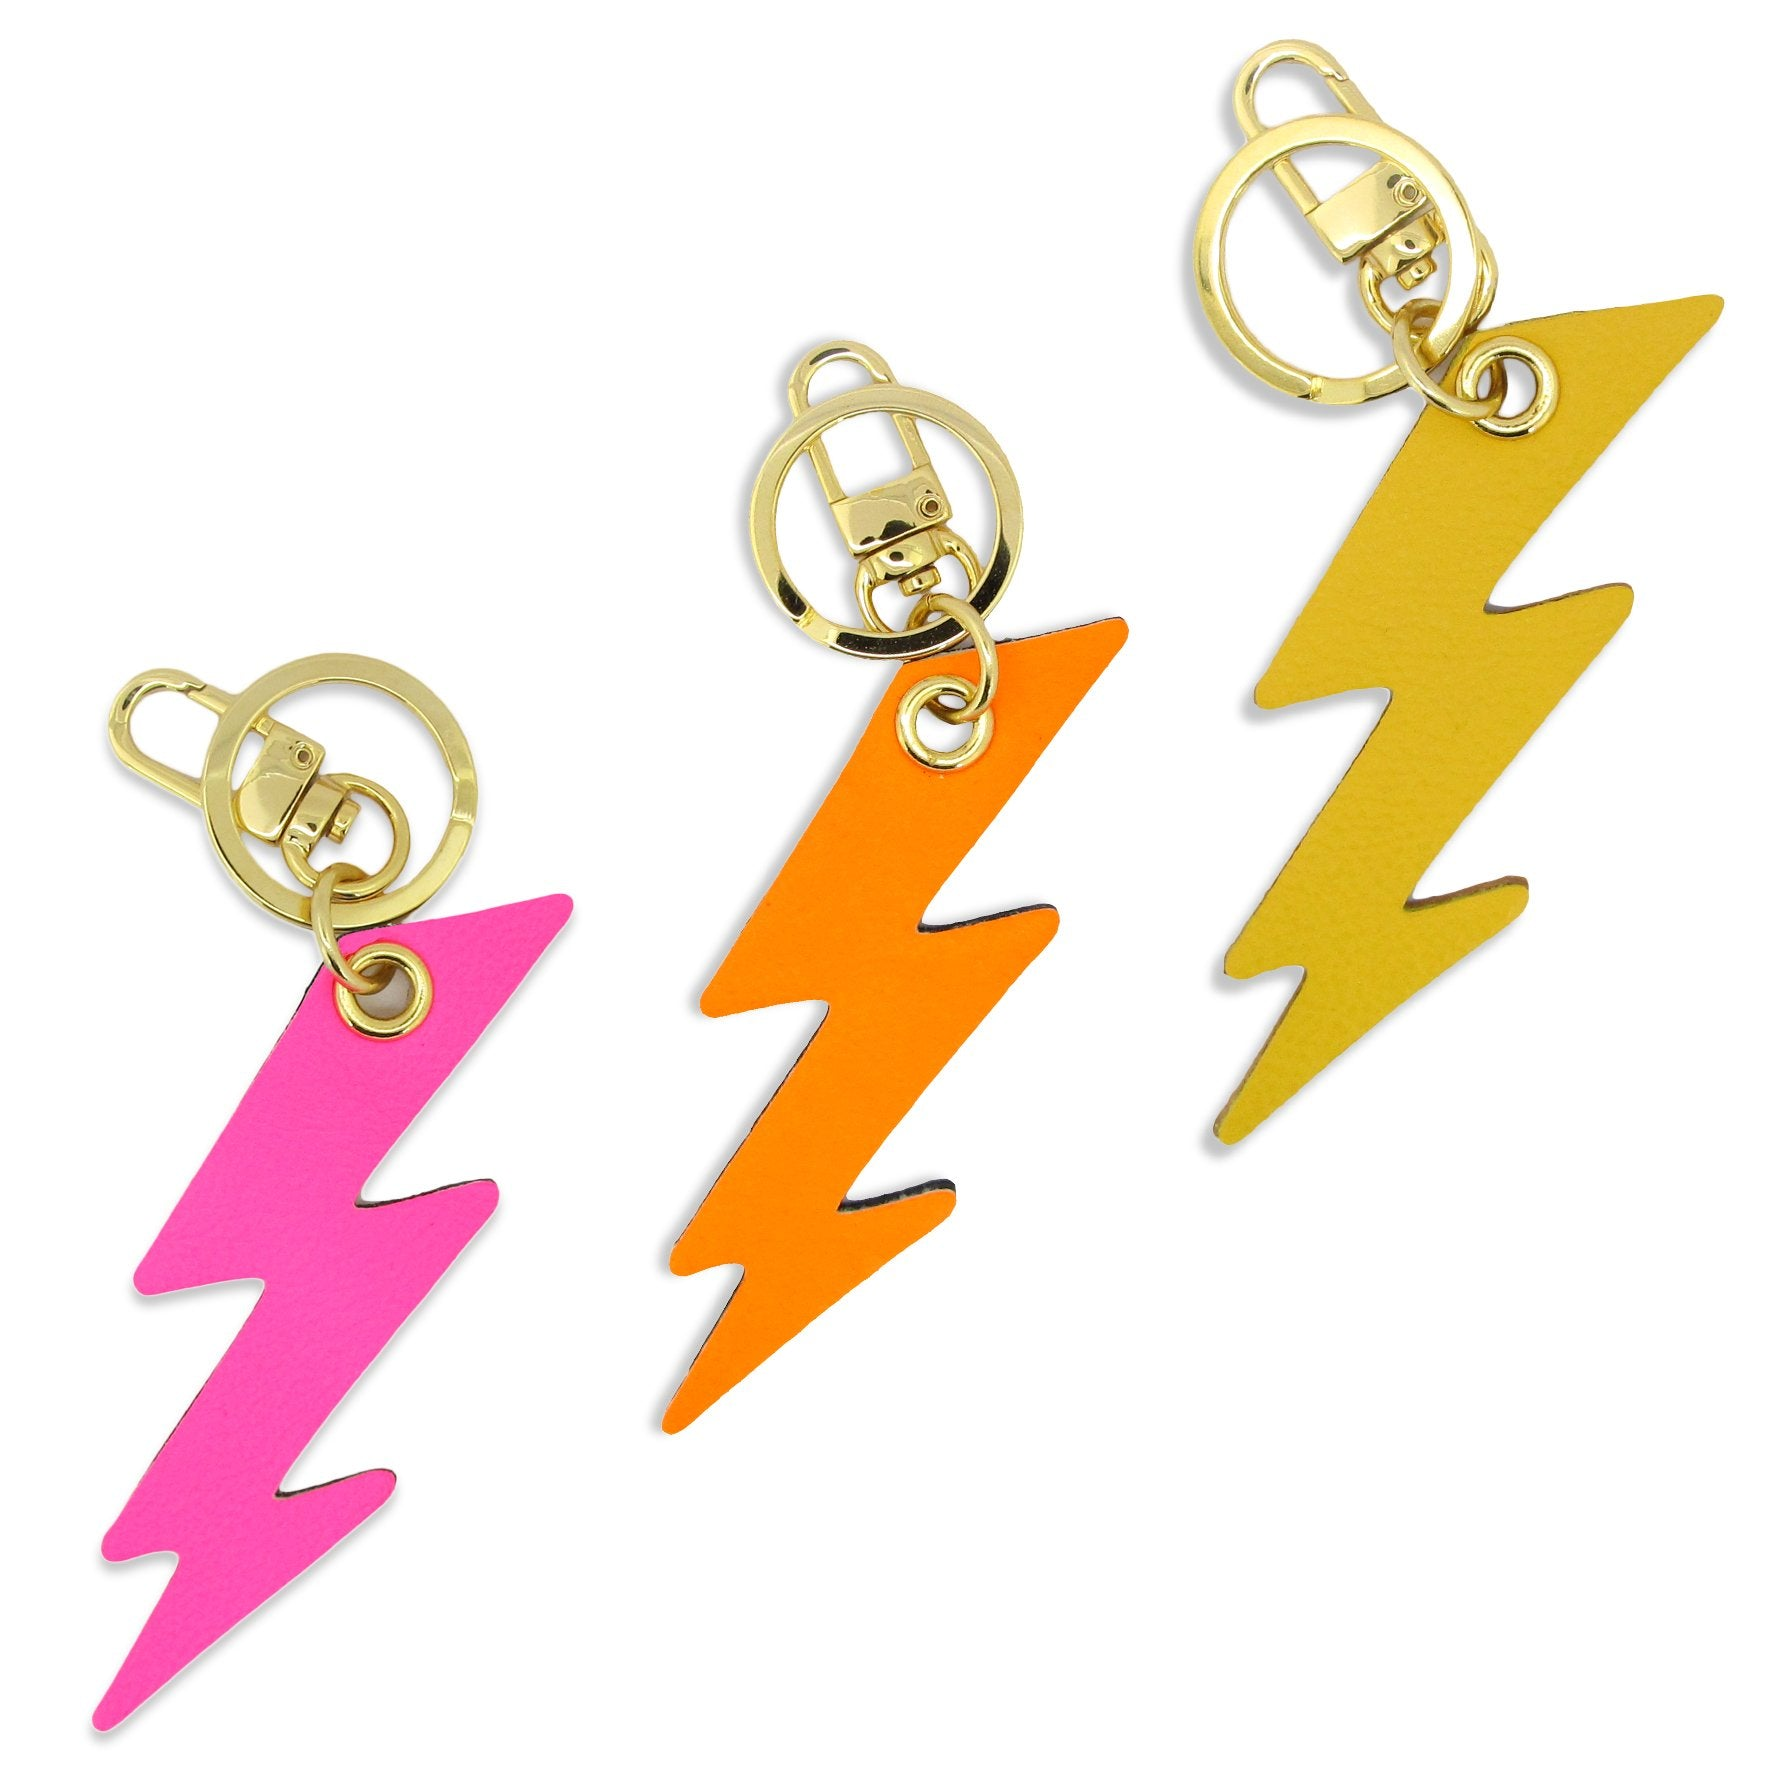 Leather Key Ring / Bag Charm - Lightning Bolt Key Ring / Bag Charm Tovi Sorga